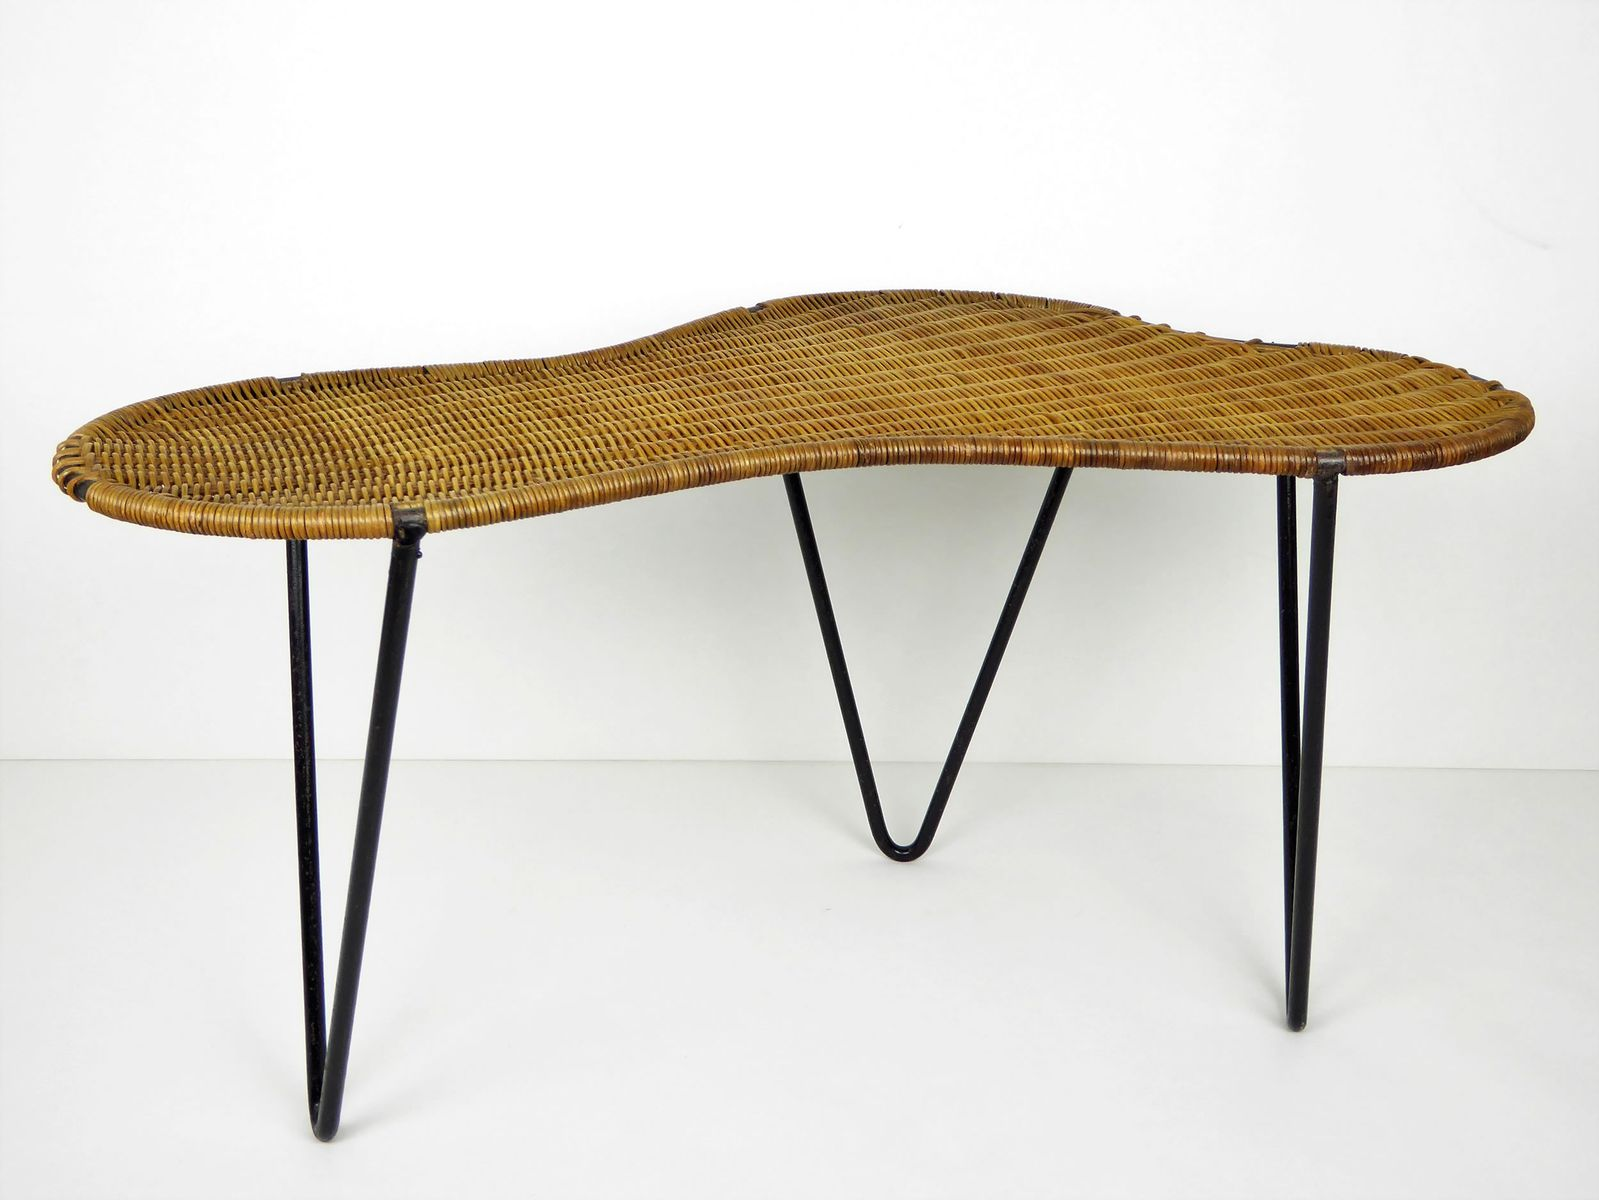 Vintage Rattan And Black Metal Rognon Coffee Table By